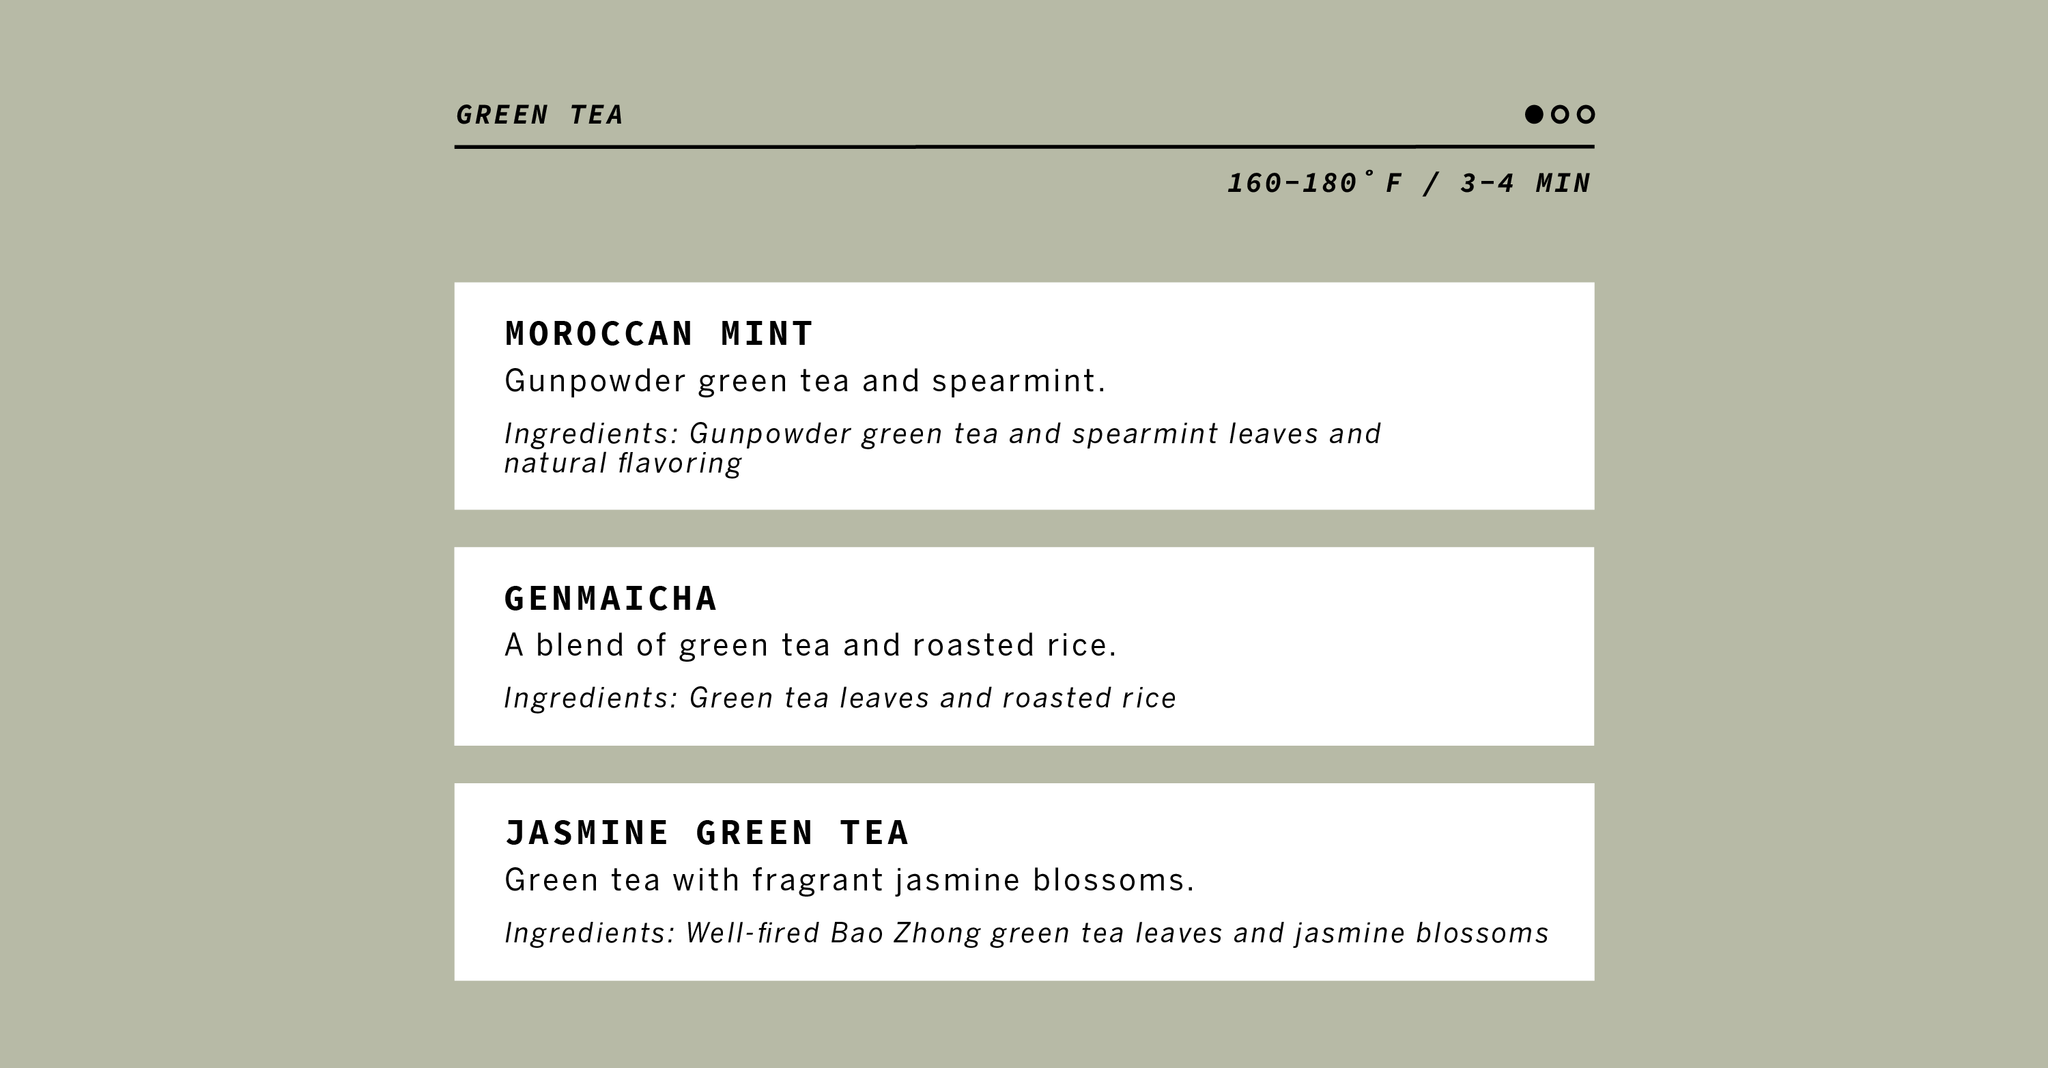 Green Tea Information